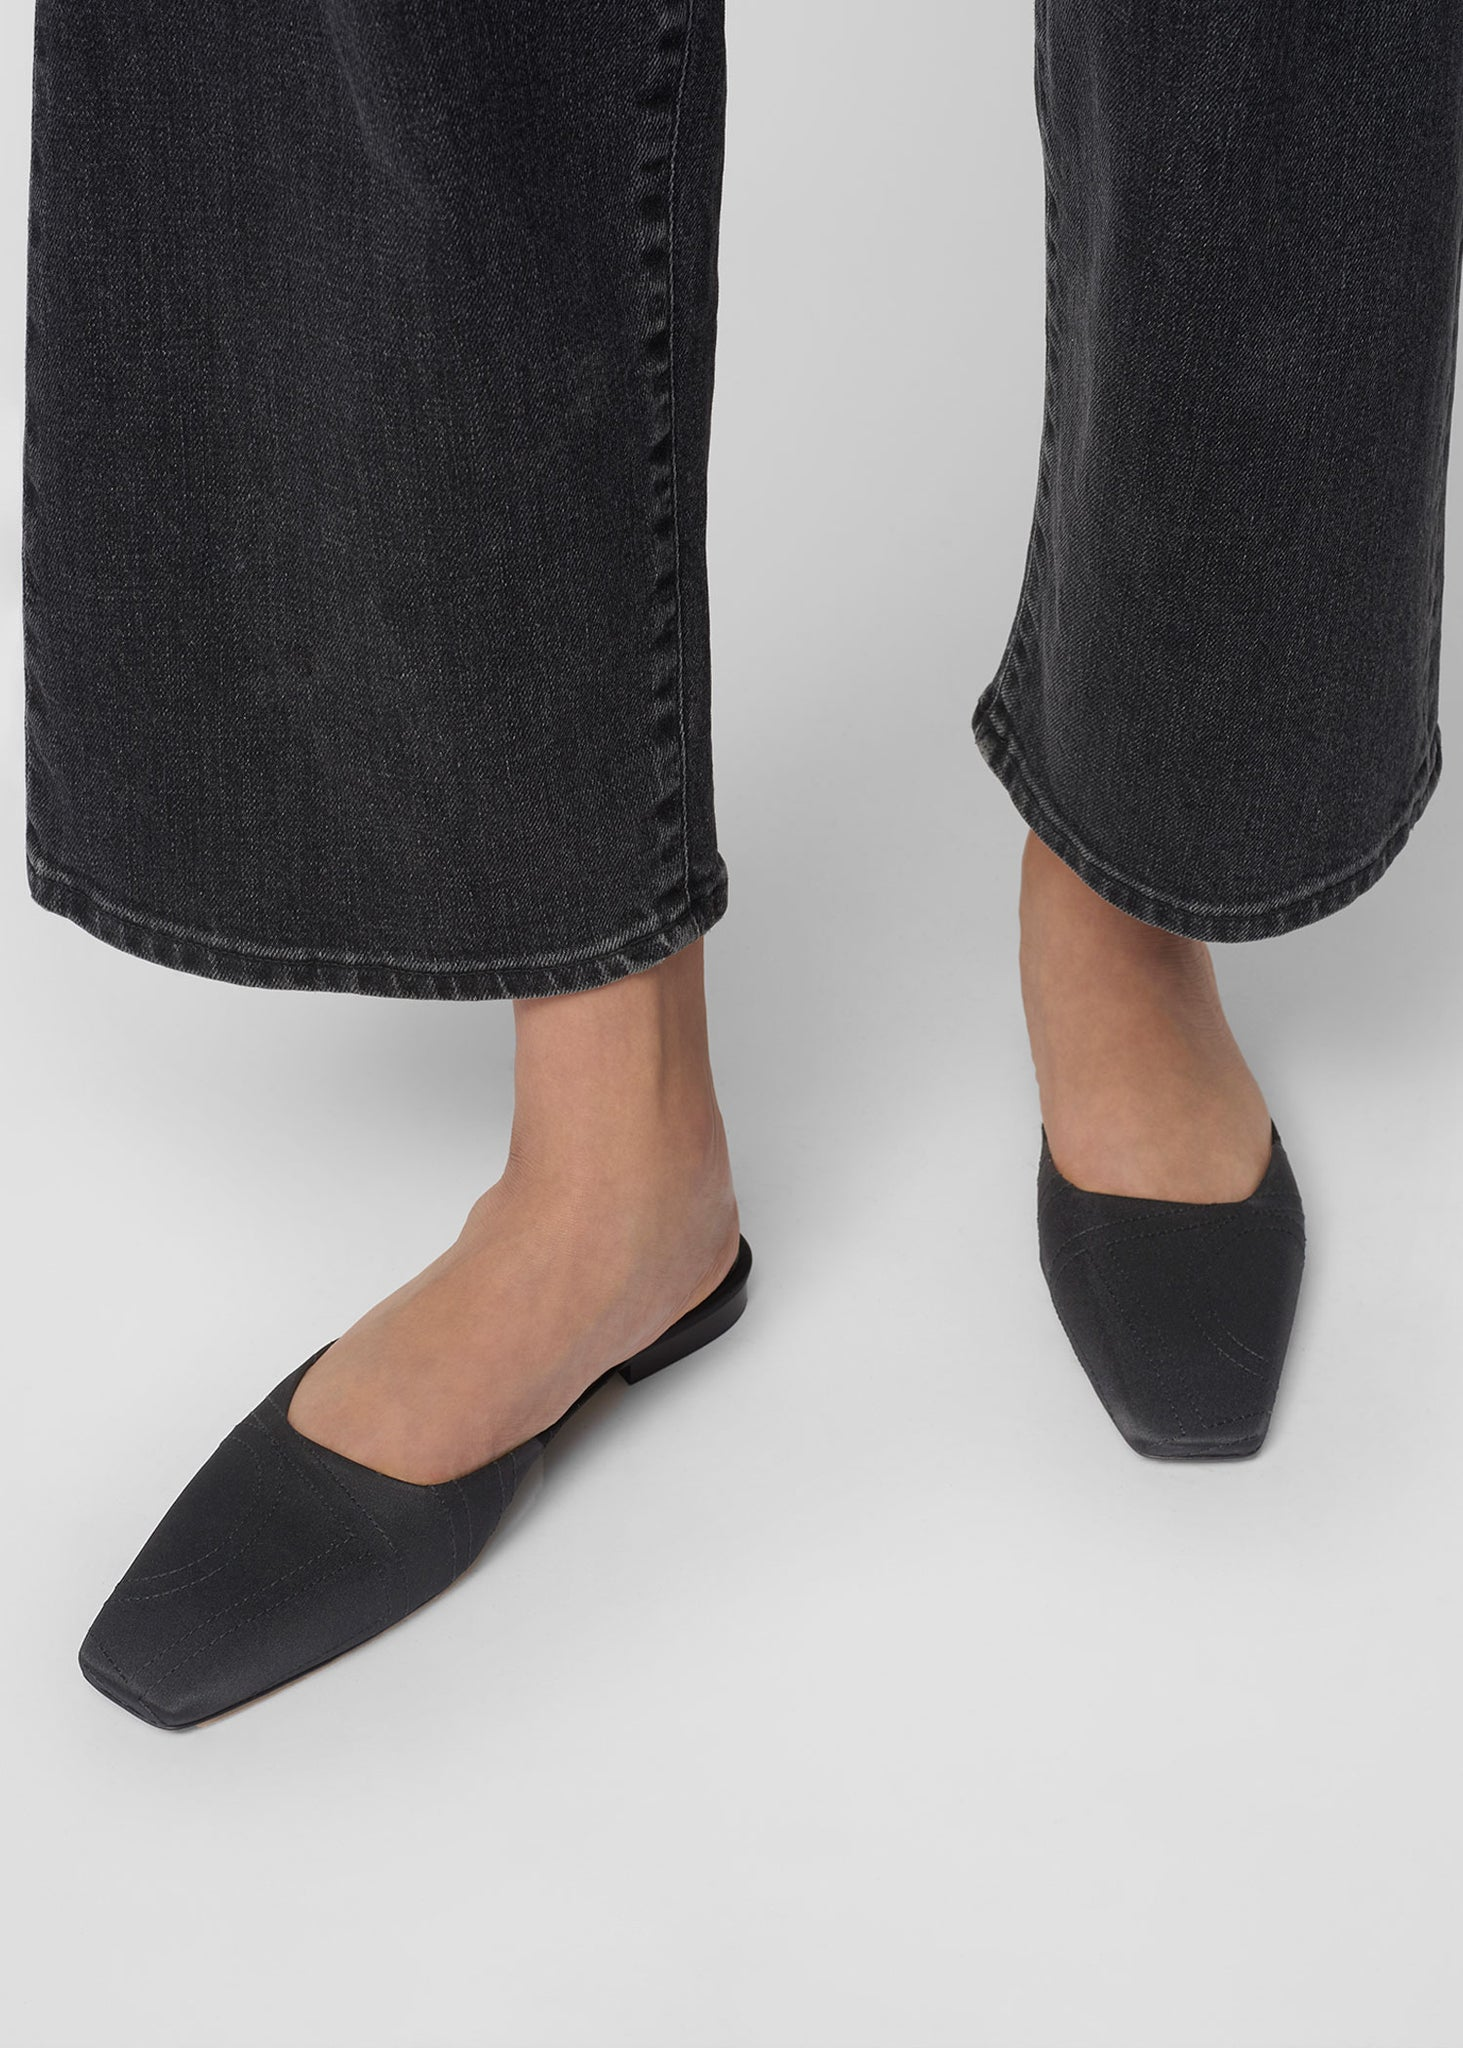 The Flat Mule black satin